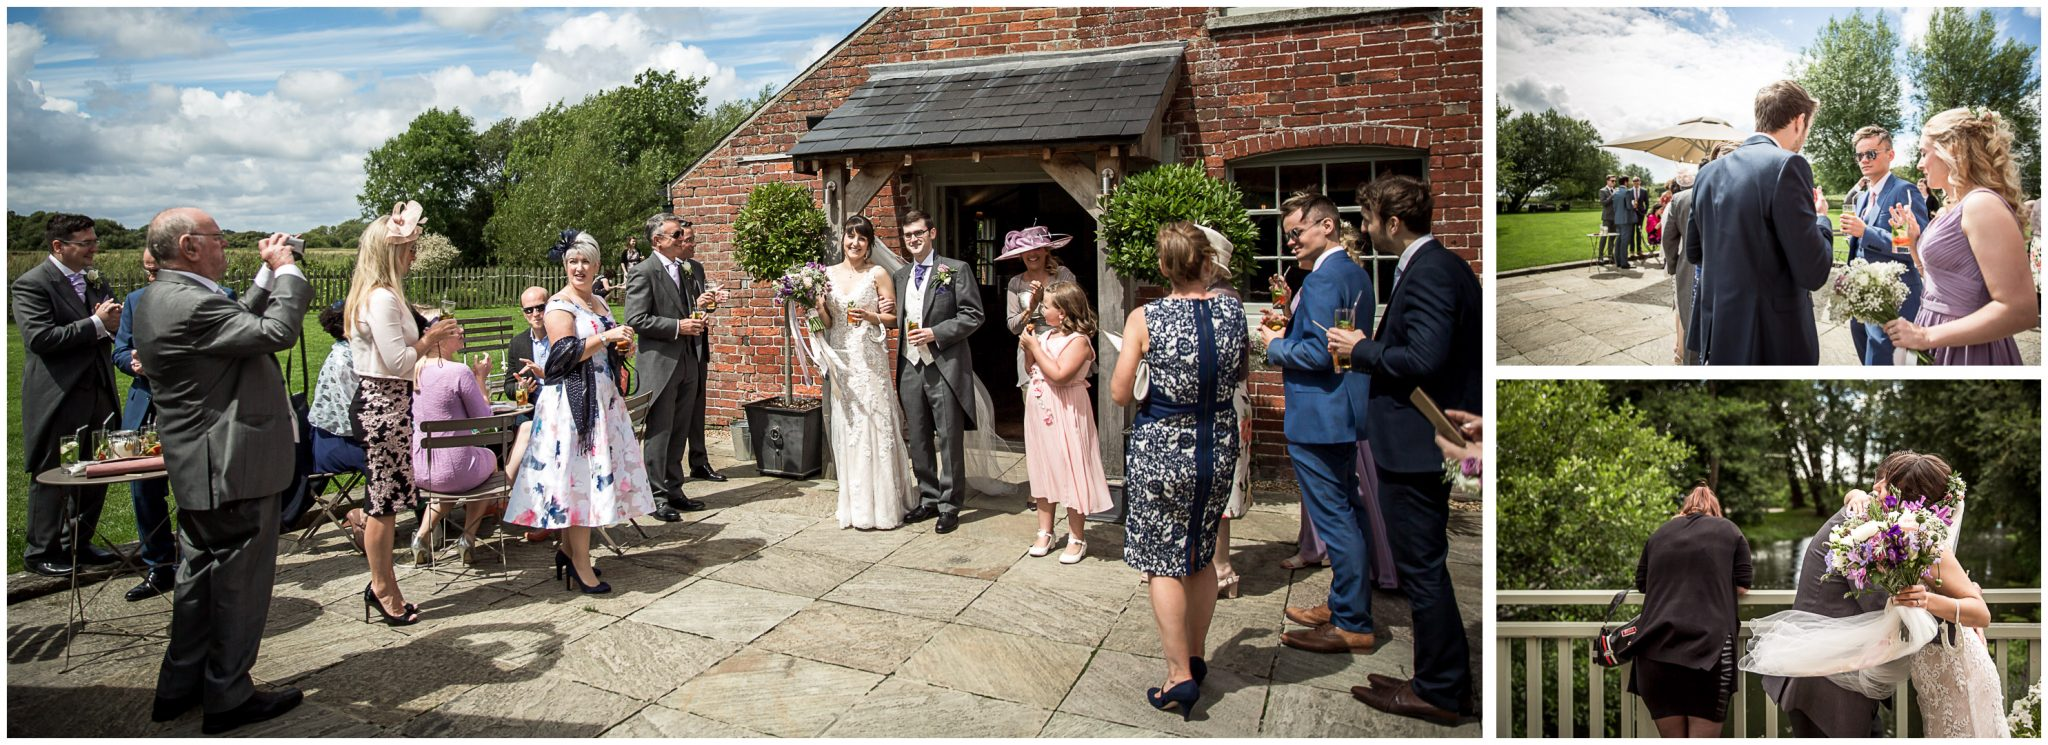 Sopley Mill wedding photography couple emerge from building to be congratulated by guests